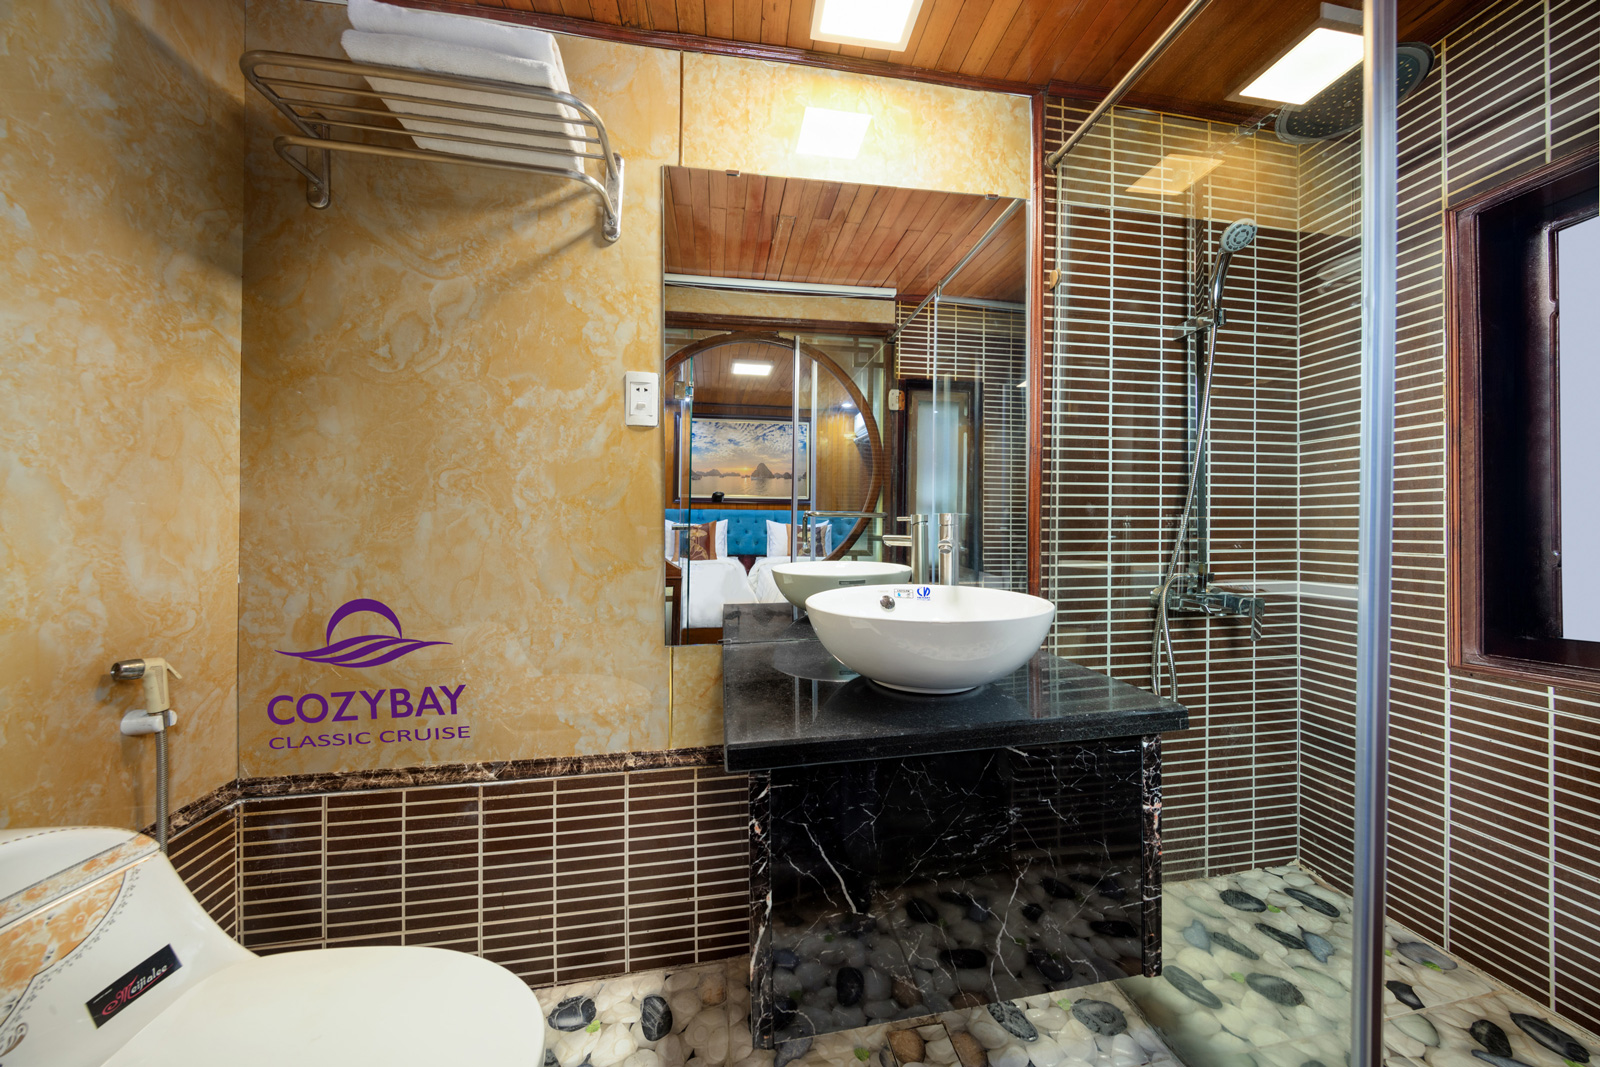 cozybay classic cruise Bathroom Halong bay overnight Cruise